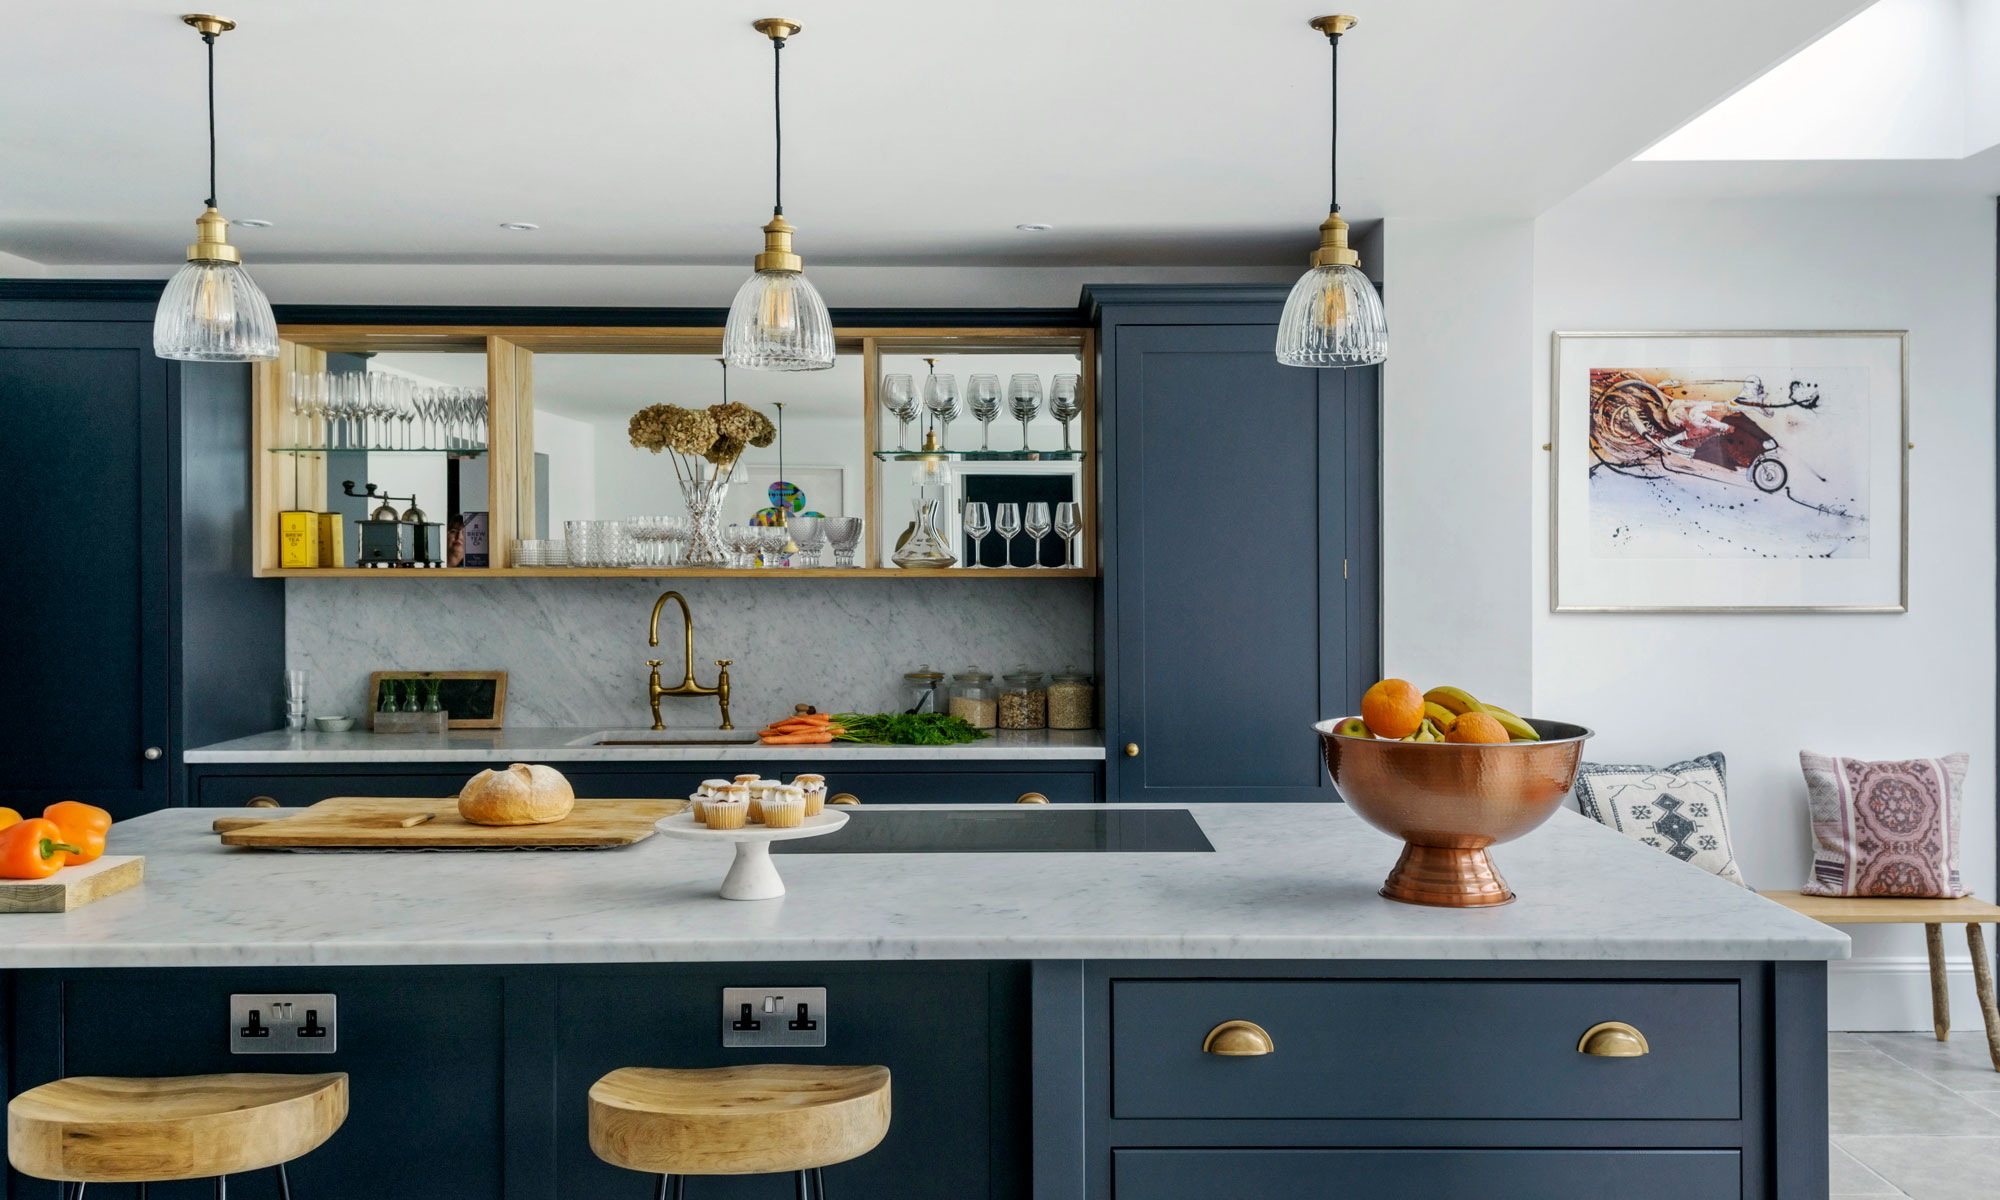 Guide to Kitchen Planning